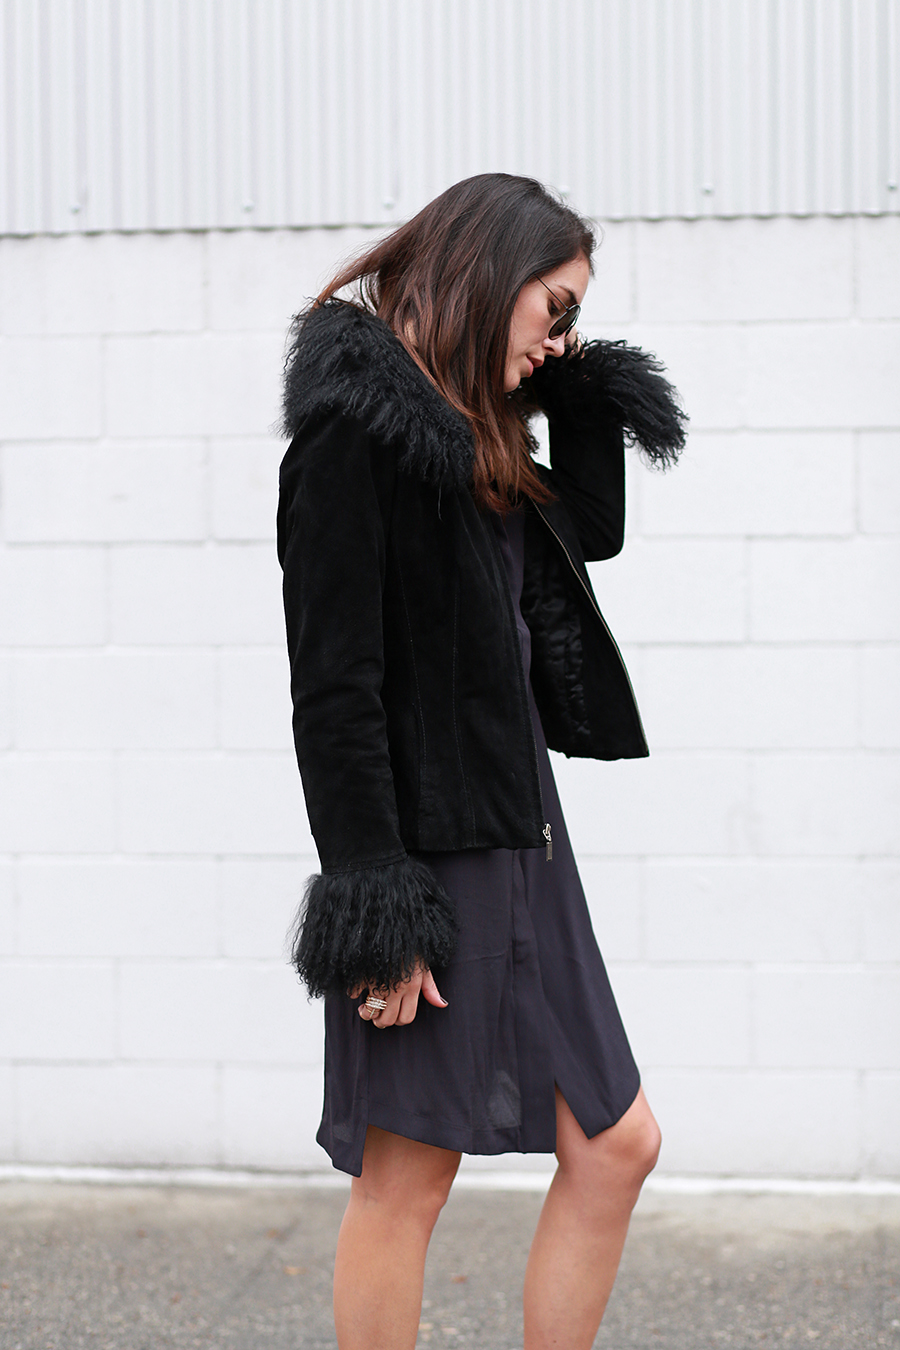 H&M dress, Vintage coat, Zara booties, No Rest For Bridget necklace, Forever 21 rings